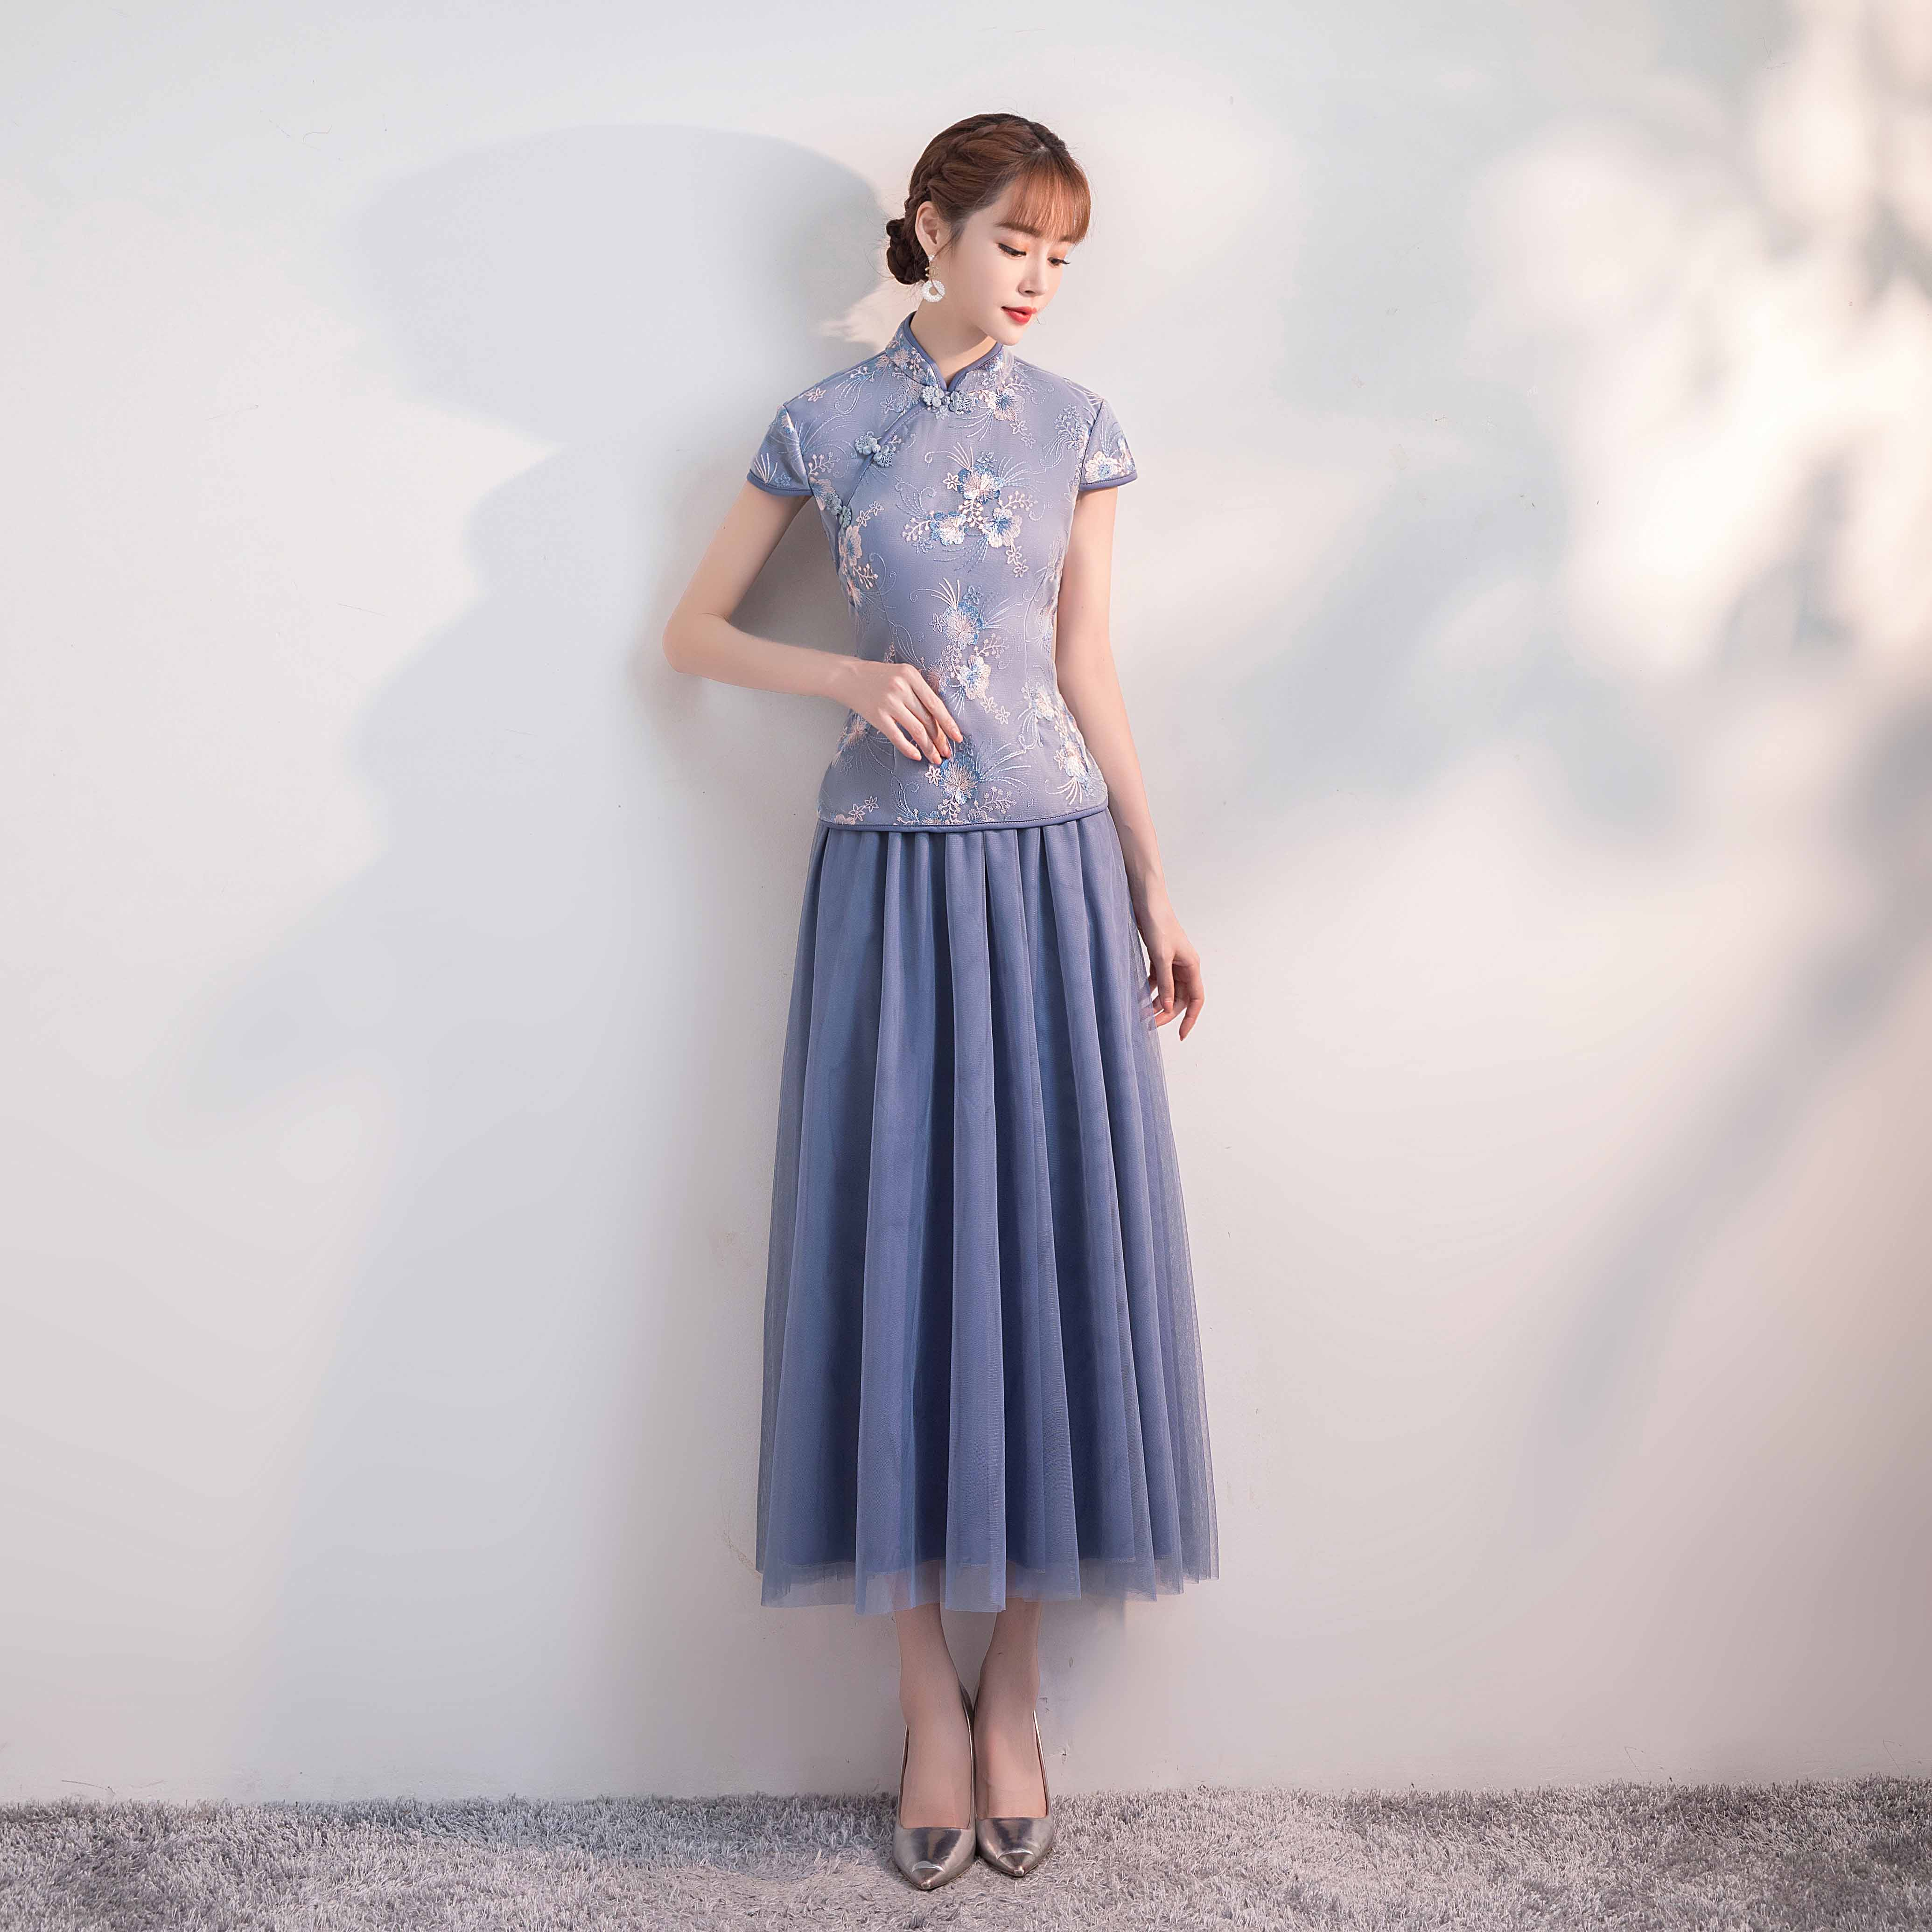 Elegant Wedding Party Dress For Dinner Blue Plus Size Bridesmaid Dress Sister Tulle Tea-Length Vintage Embroidery Prom Cheongsam